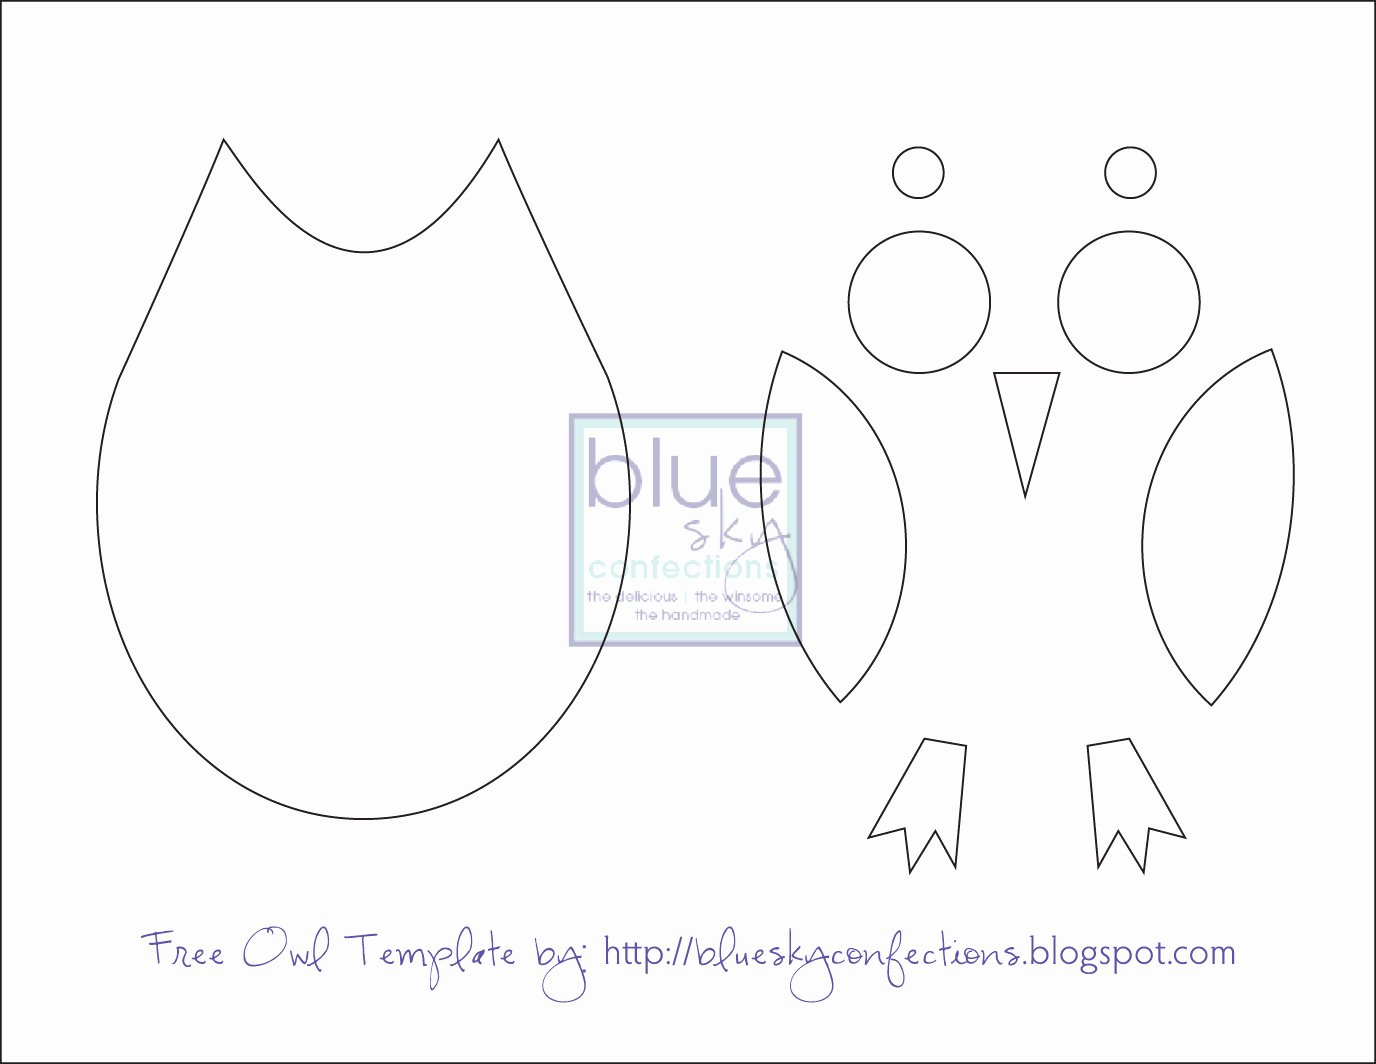 Owl Cut Out Template Beautiful Blue Sky Confections Old Frames Fabric Scraps A Few